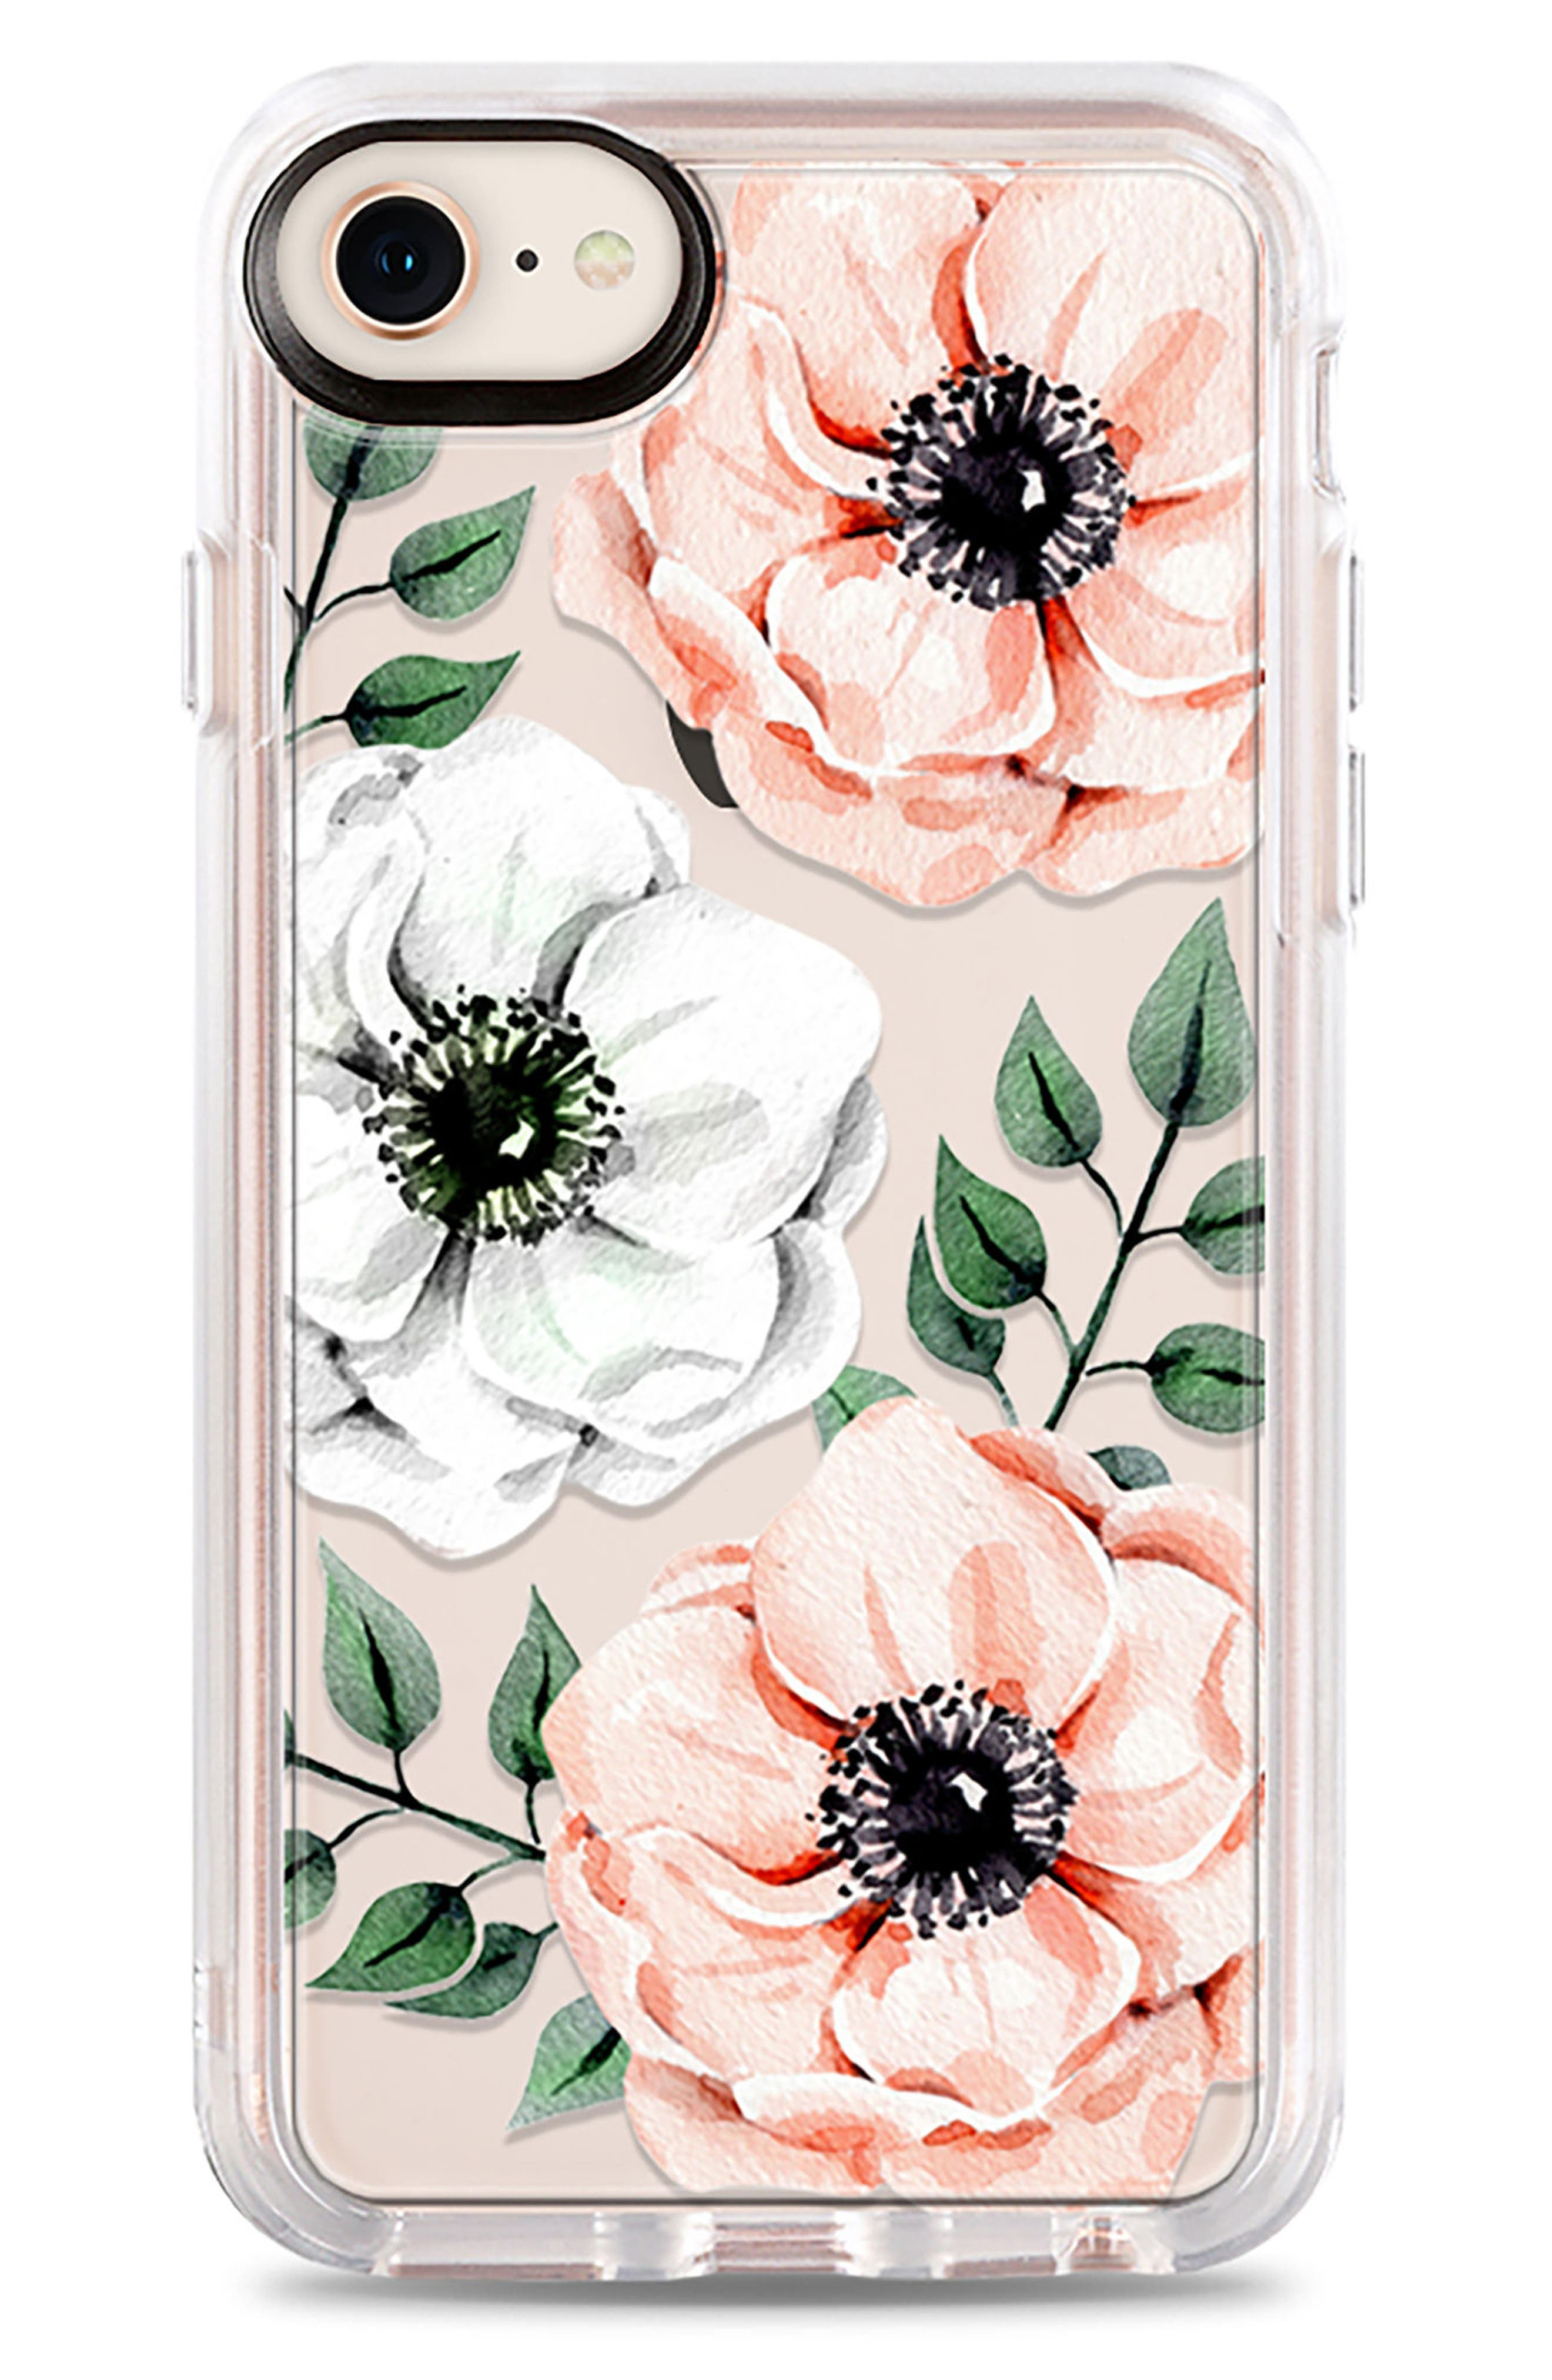 Watercolor Grip iPhone 7/8 & 7/8 Plus Case,                         Main,                         color, PINK AND WHITE